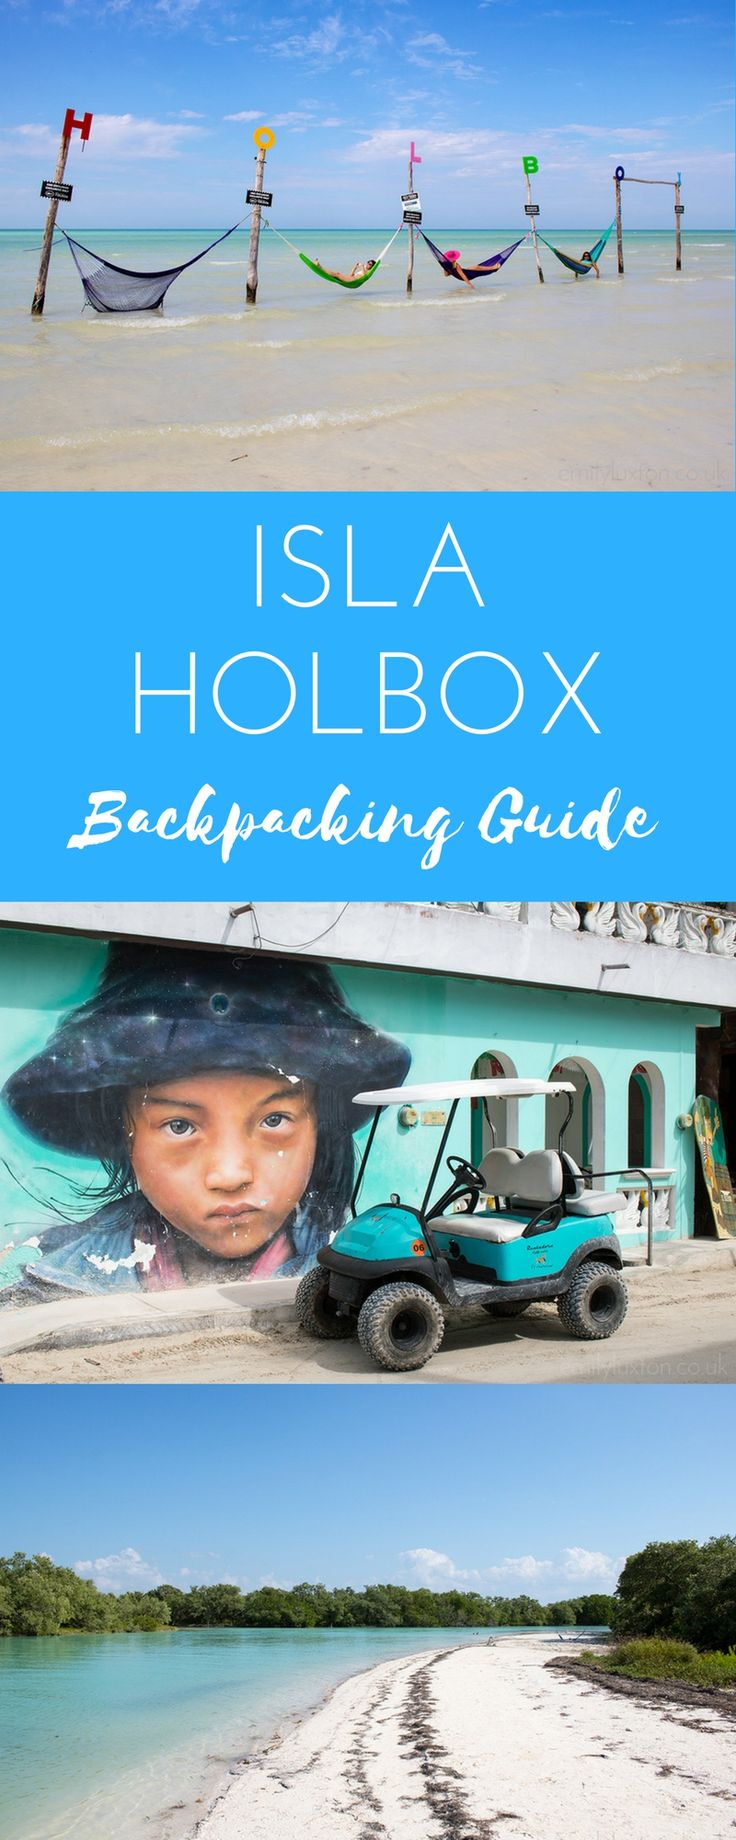 Isla Holbox Backpacking Guide. How to get there, what things cost, and some top tips for things to do. Sleepy, chilled out Holbox should be added to any Mexico itinerary.